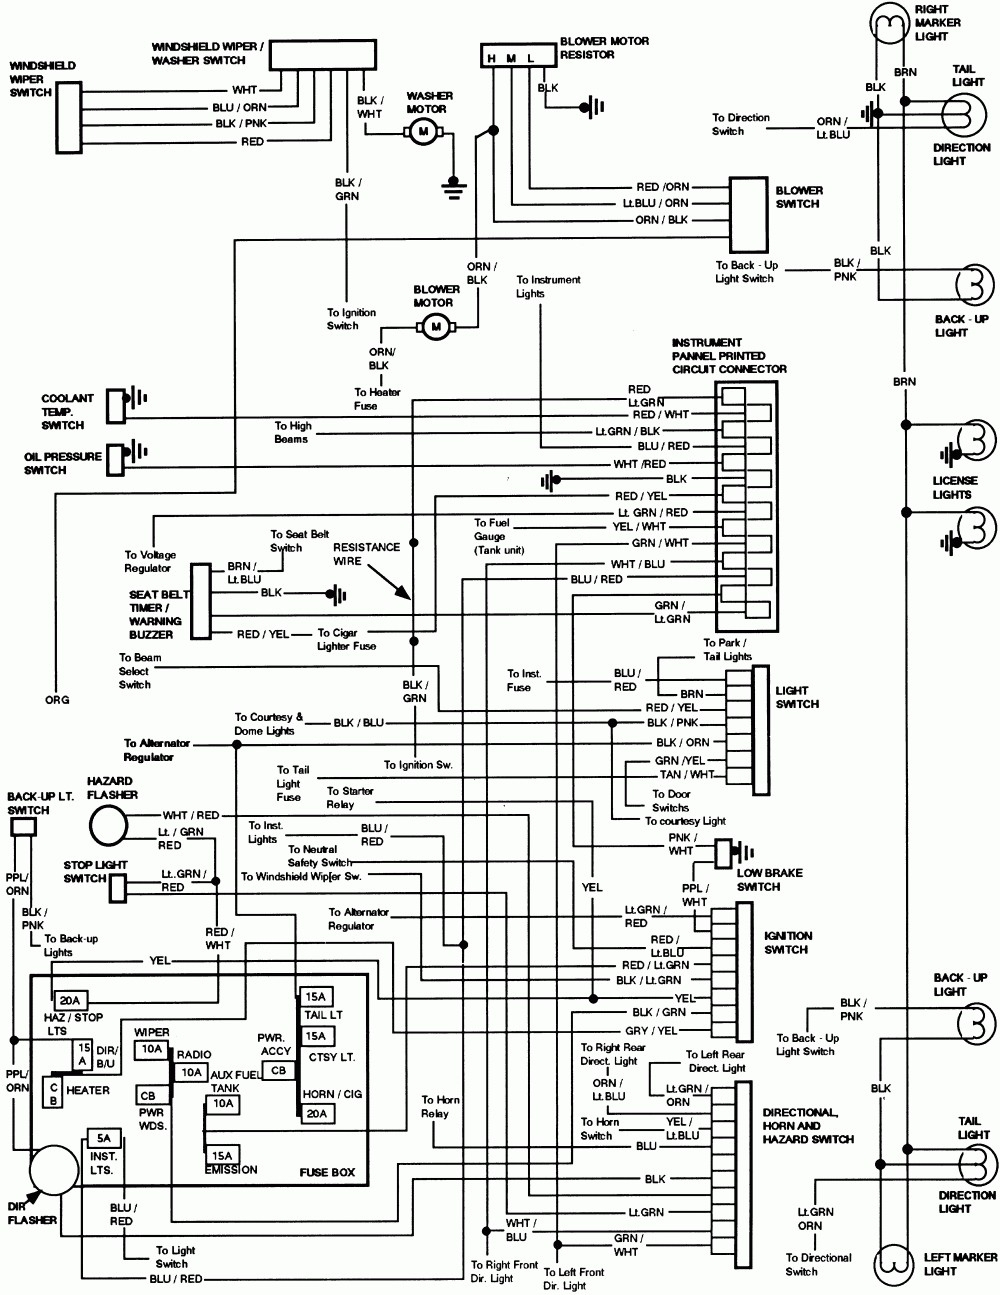 1986 ford f150 radio wiring diagram Collection-1986 ford f150 engine wiring diagram collection wiring diagram rh galericanna Motor for 1999 Ford 18-j